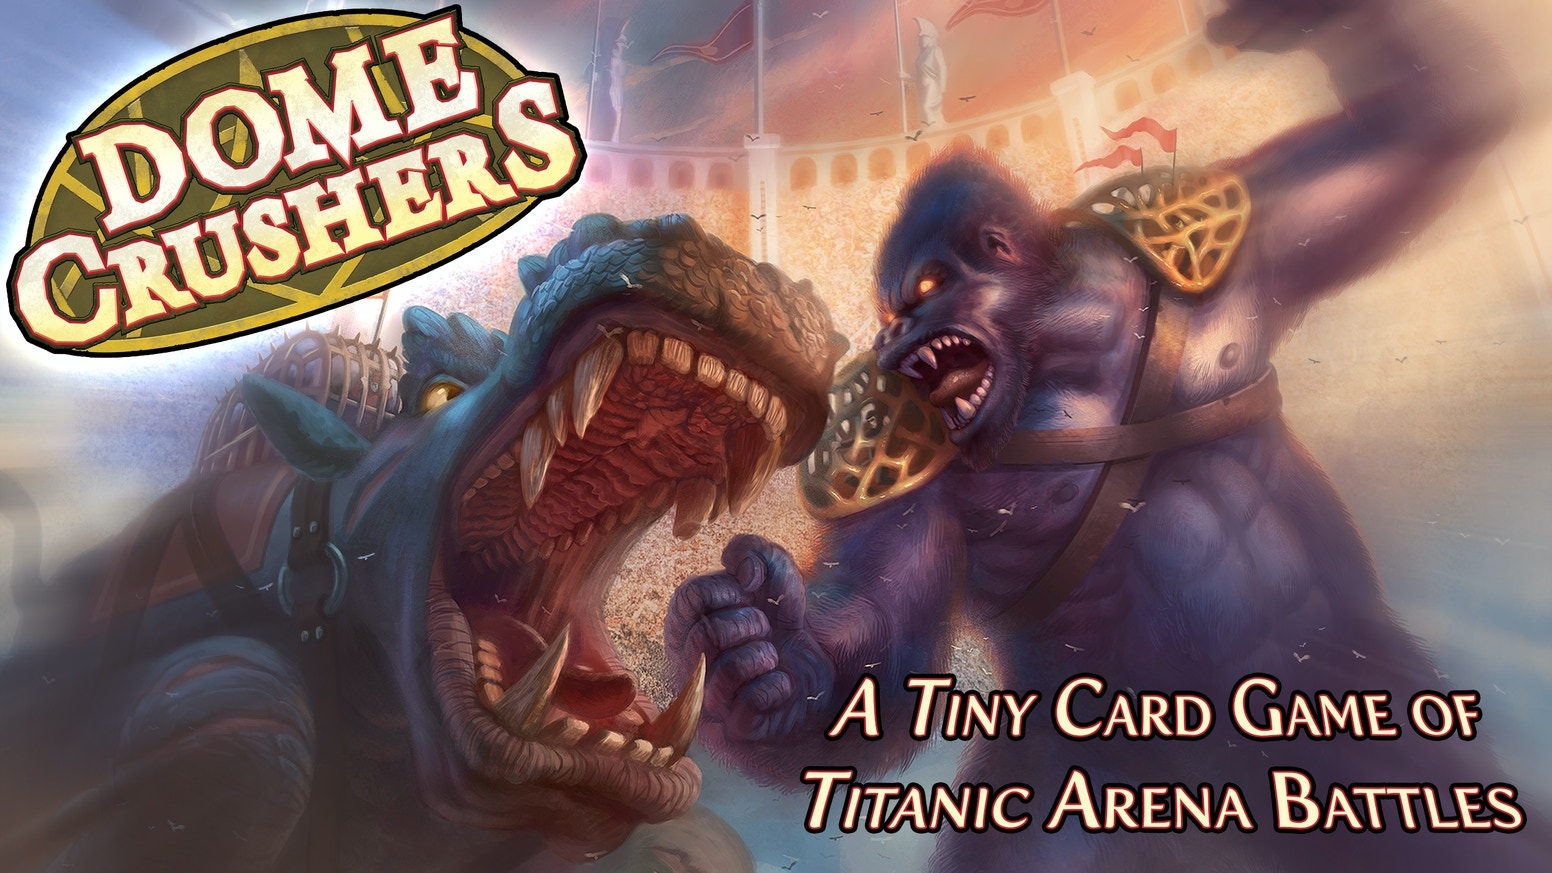 A two-player card game that plays in under 10 minutes. Brute strength may win the round, but cleverness will lead to victory!